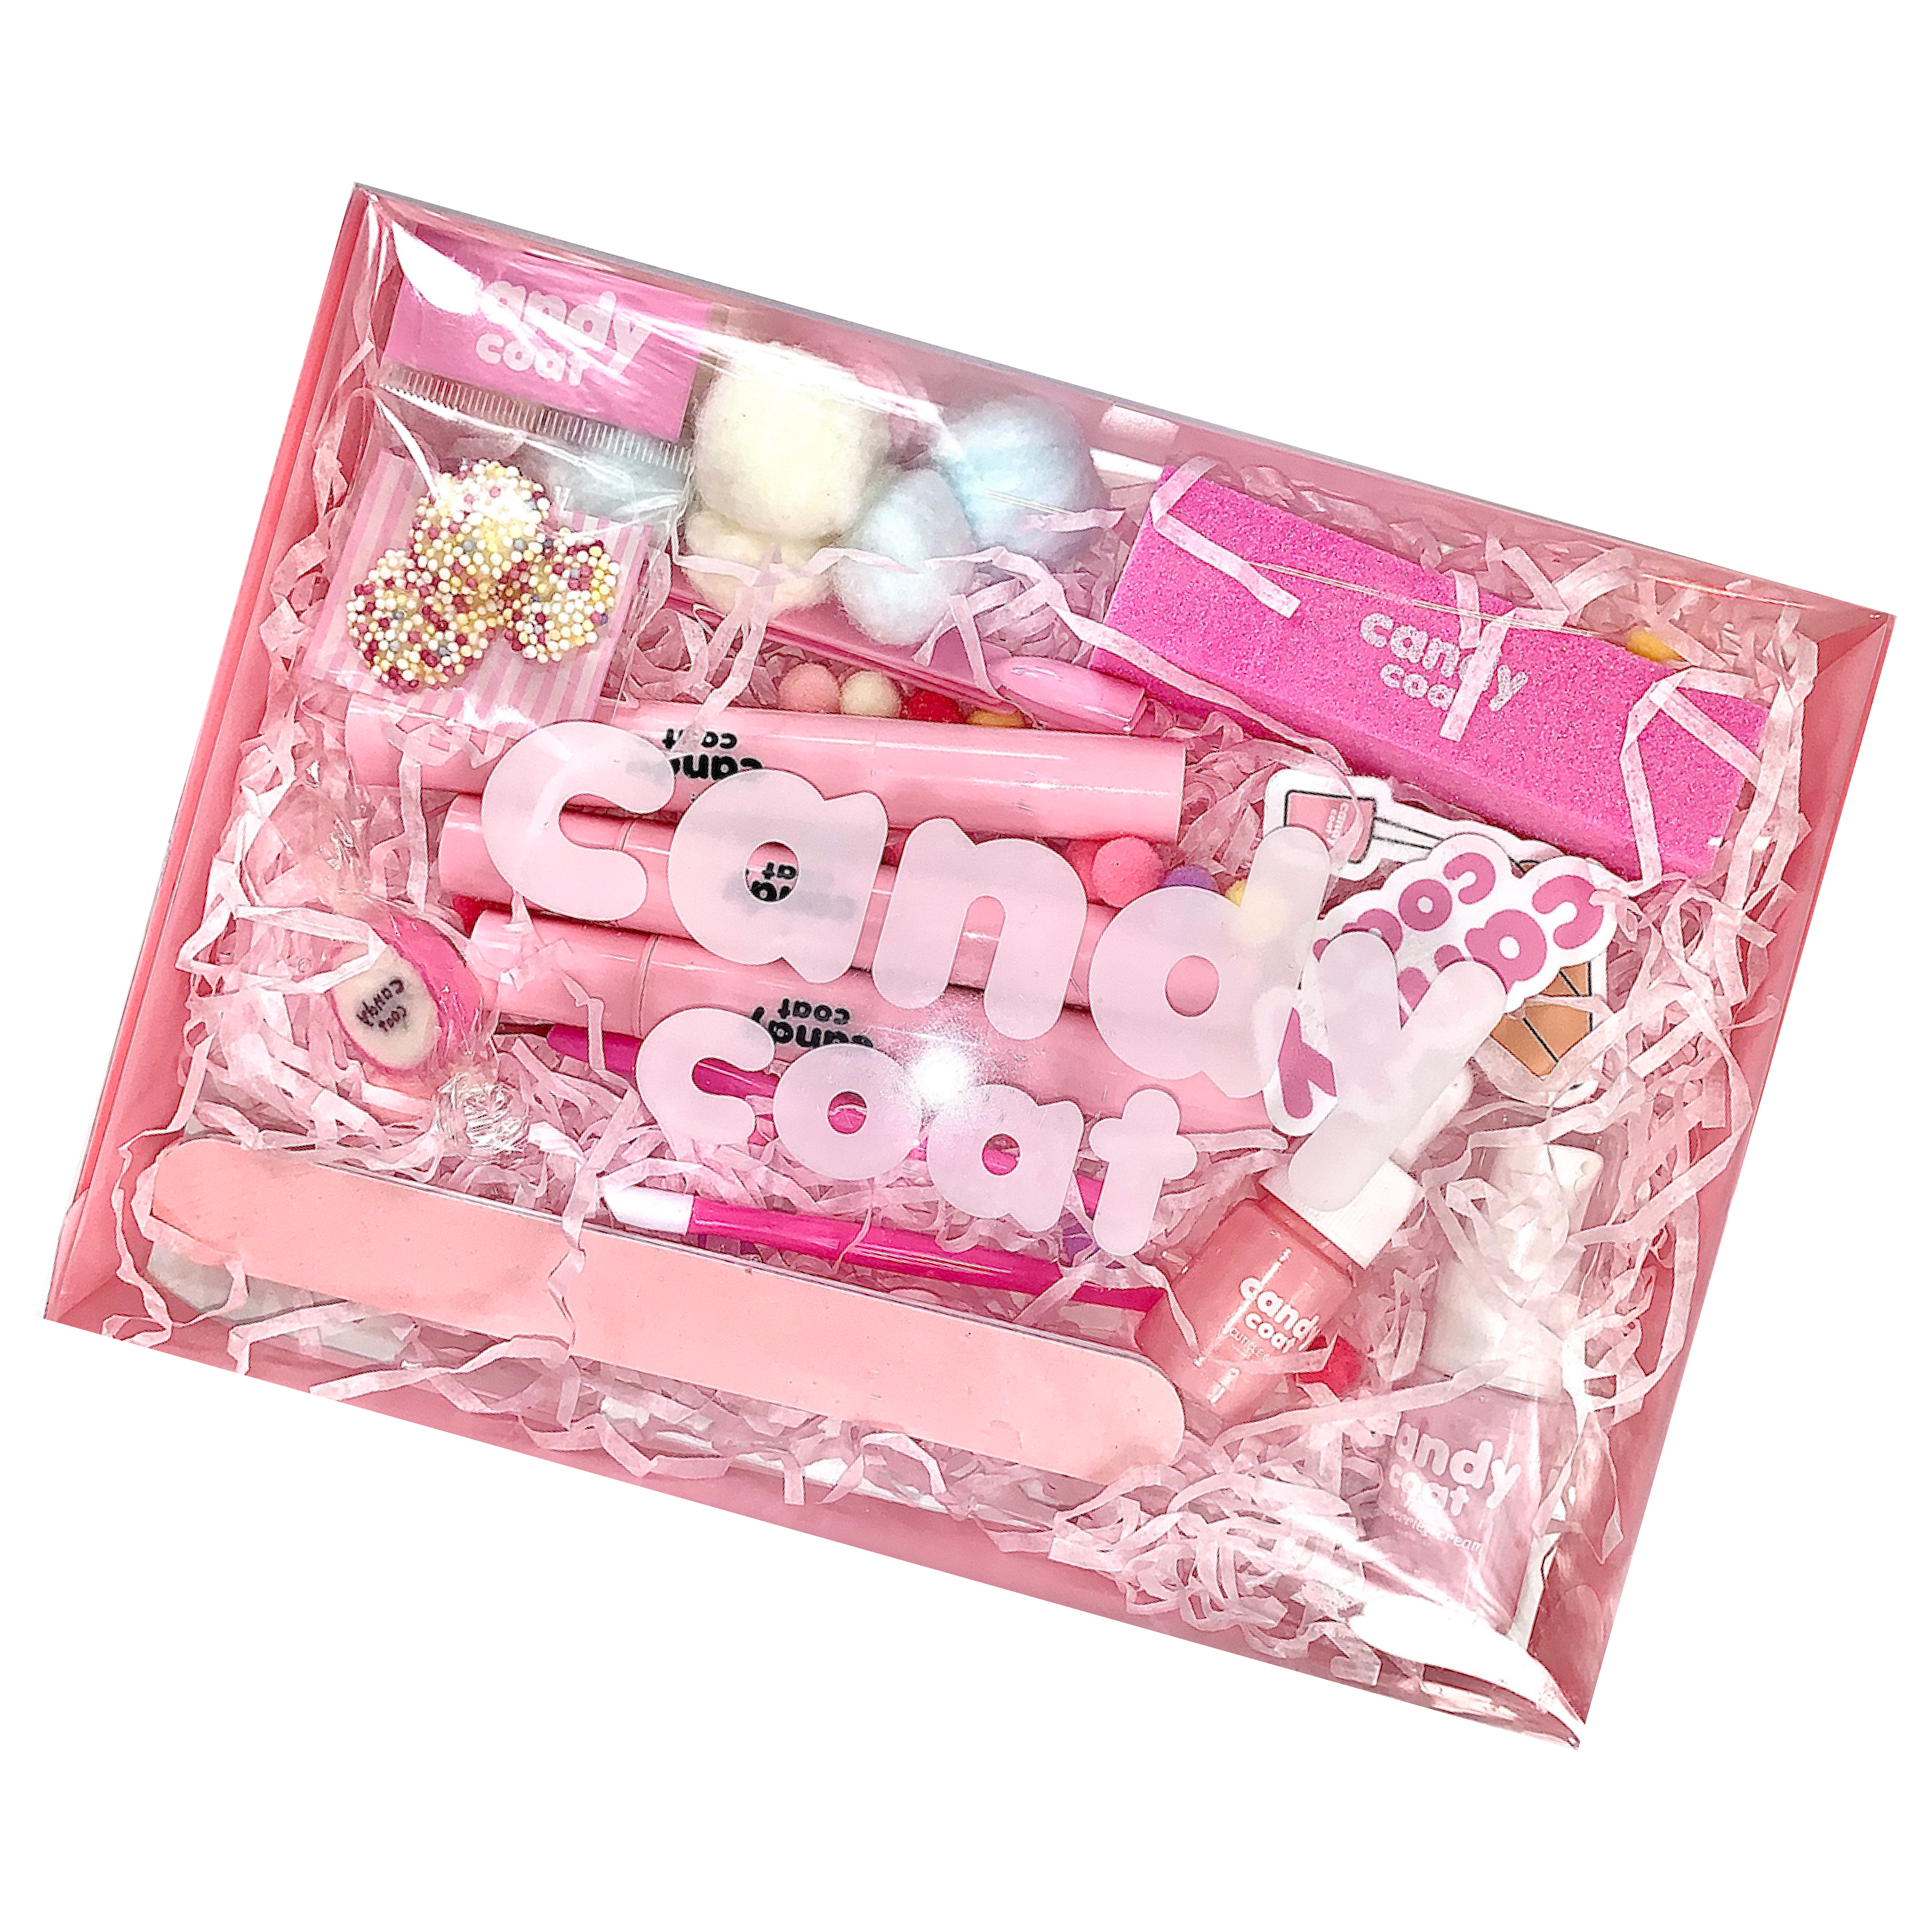 Mini Mani - Candy Stix Kit - Candy Coat